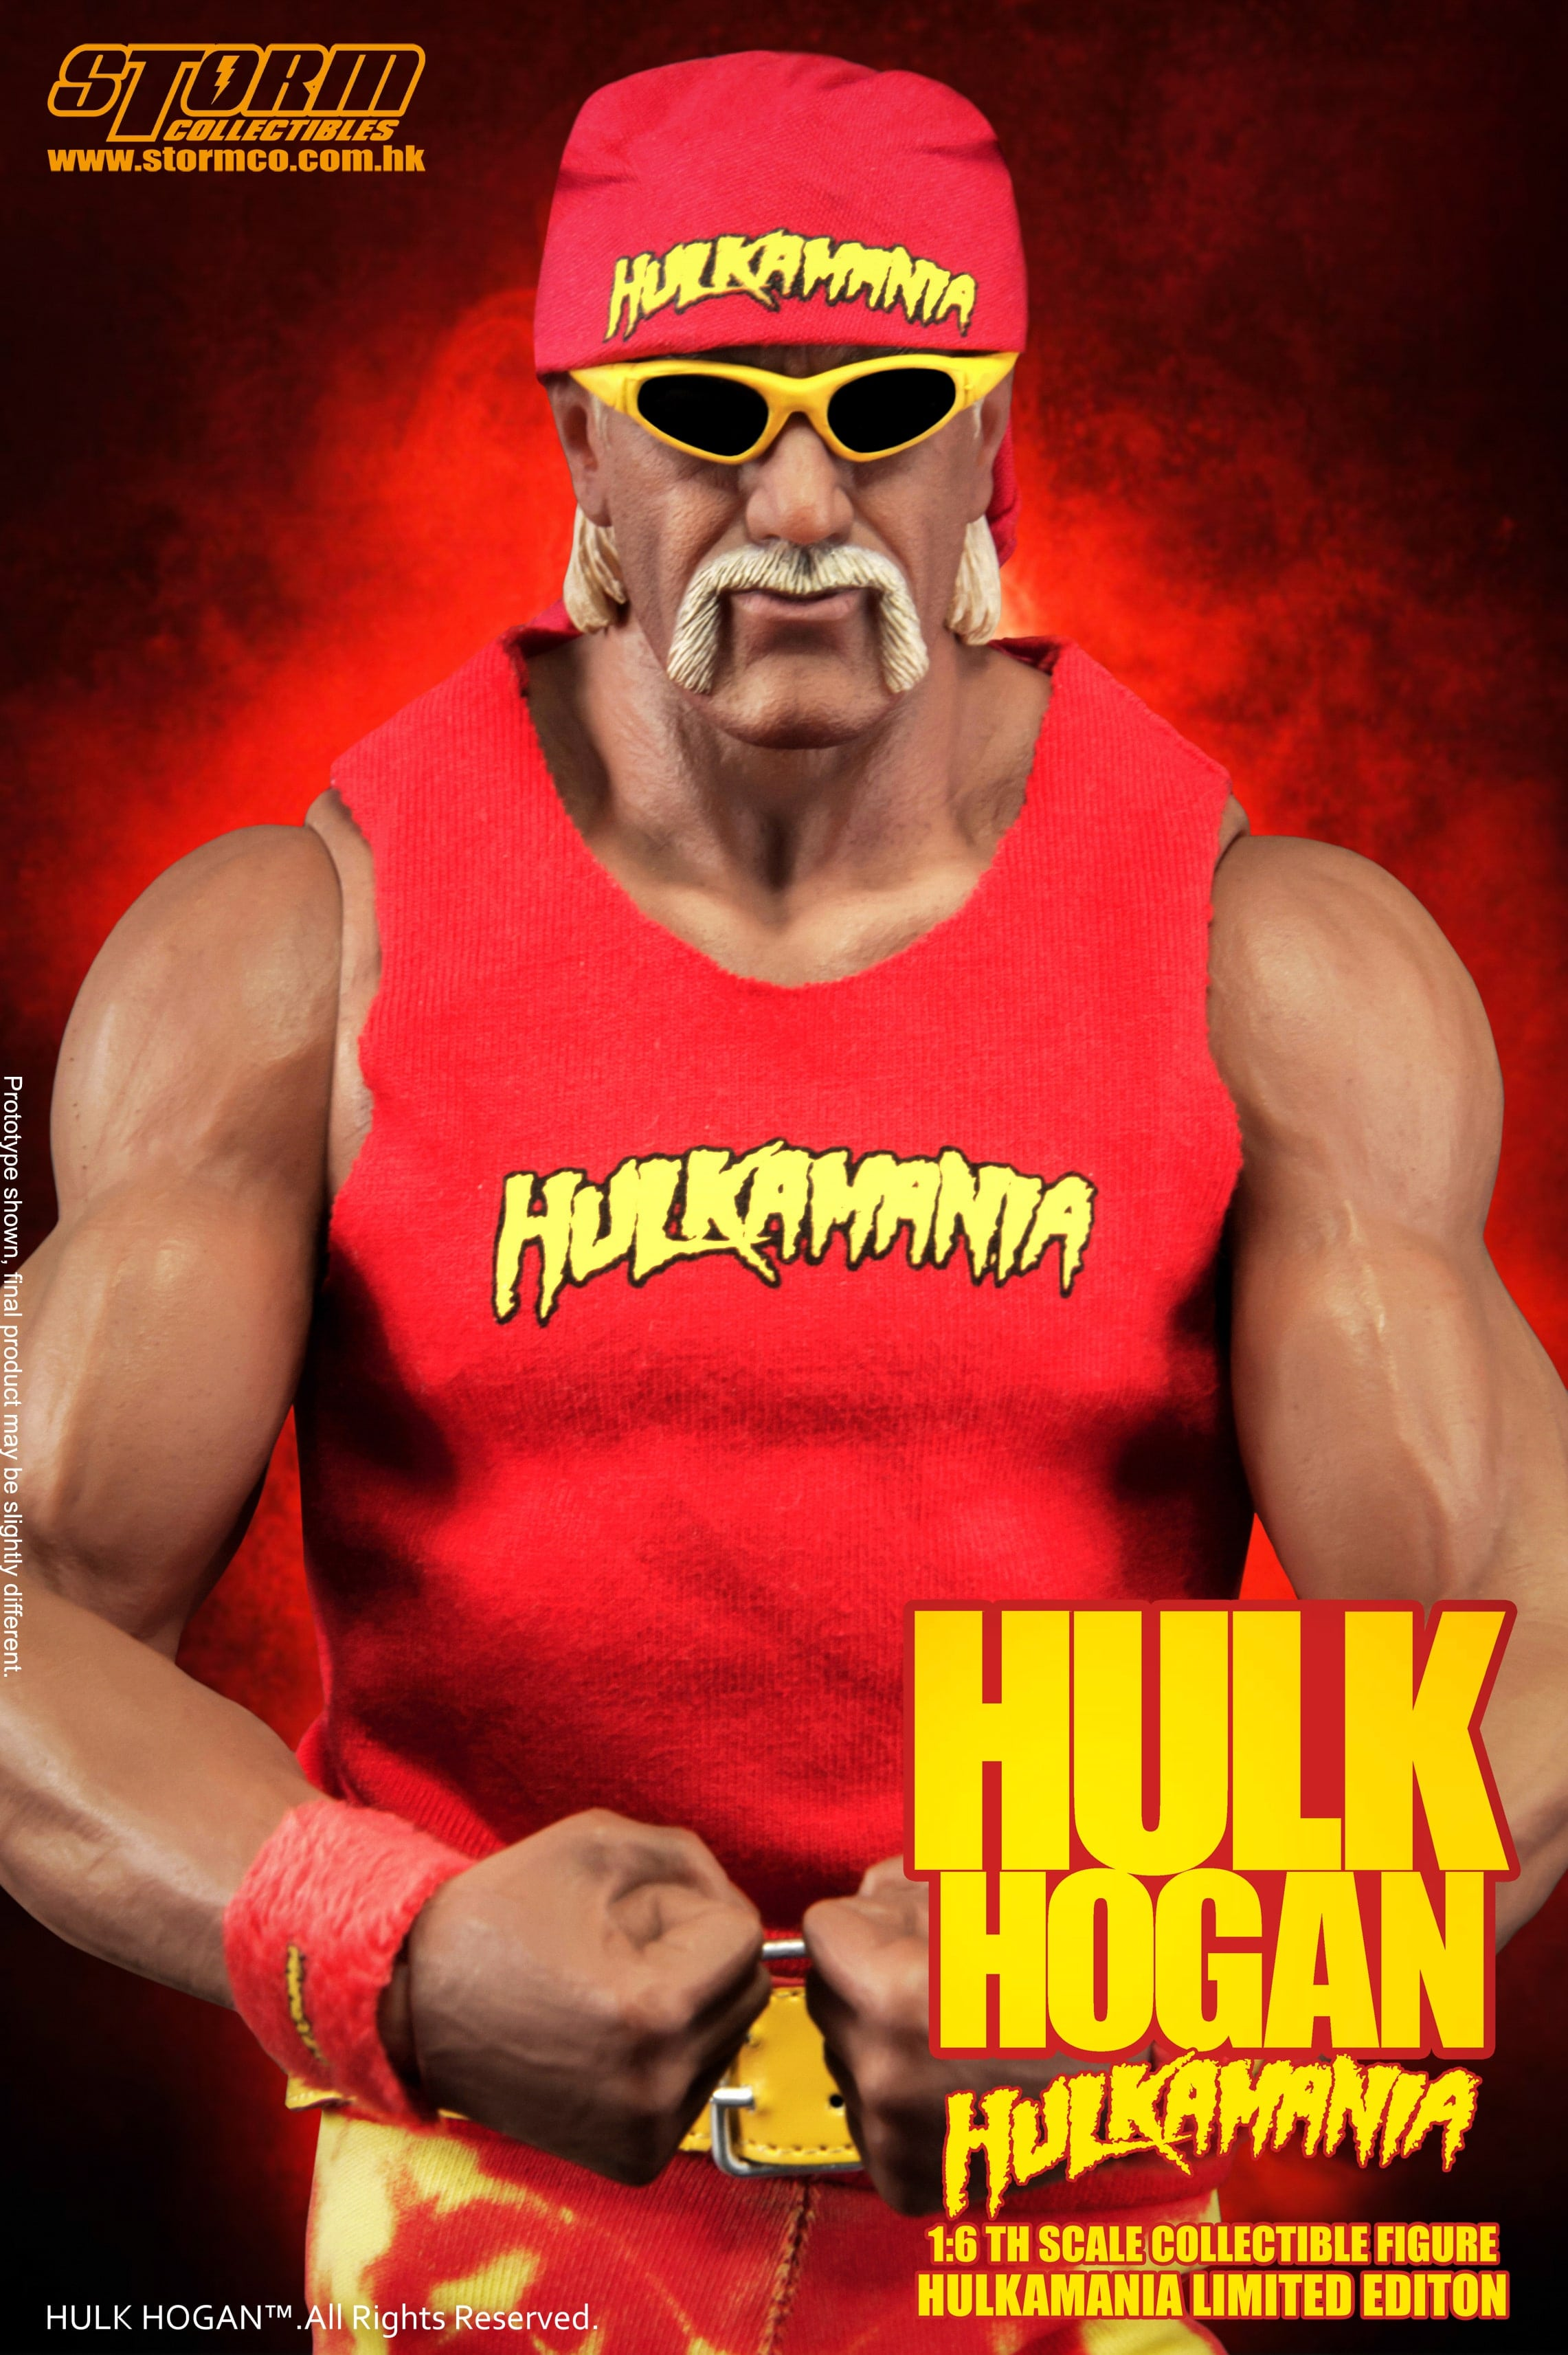 Wwe Hulk Hogan Storm Collectibles Wwe Hulk Hogan 1 6th Figure